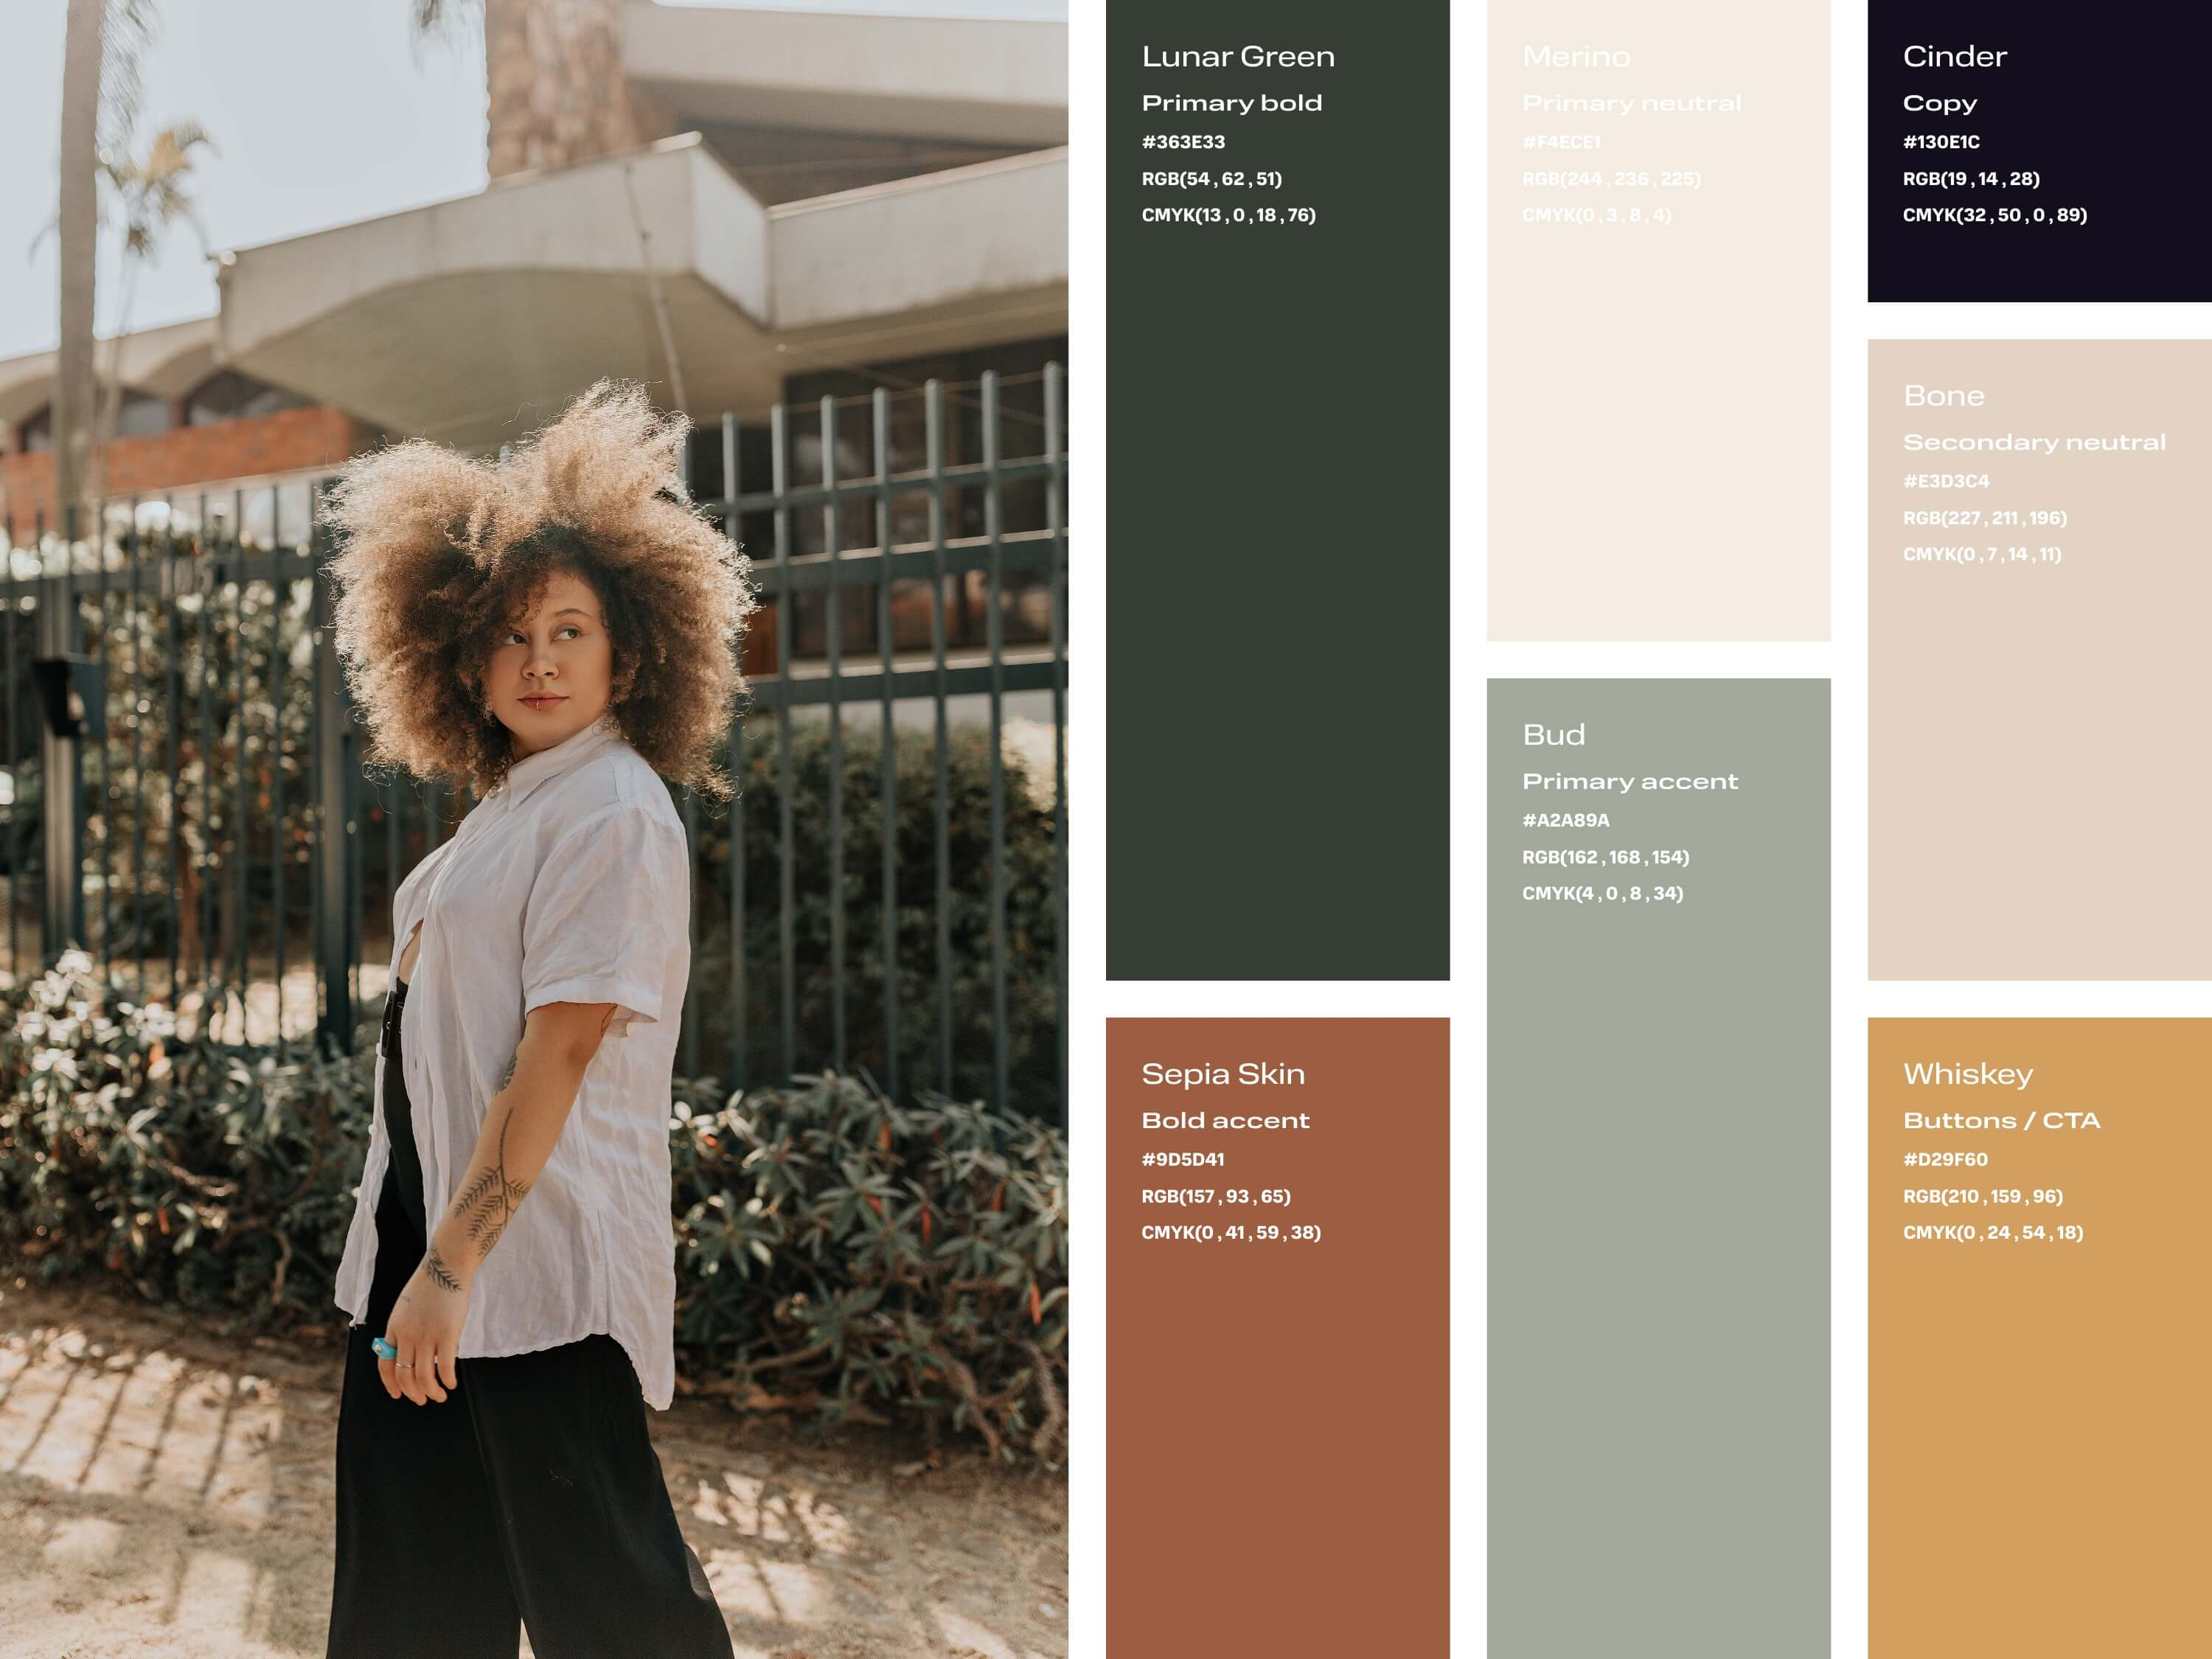 Reference image and nature-inspired colour palette